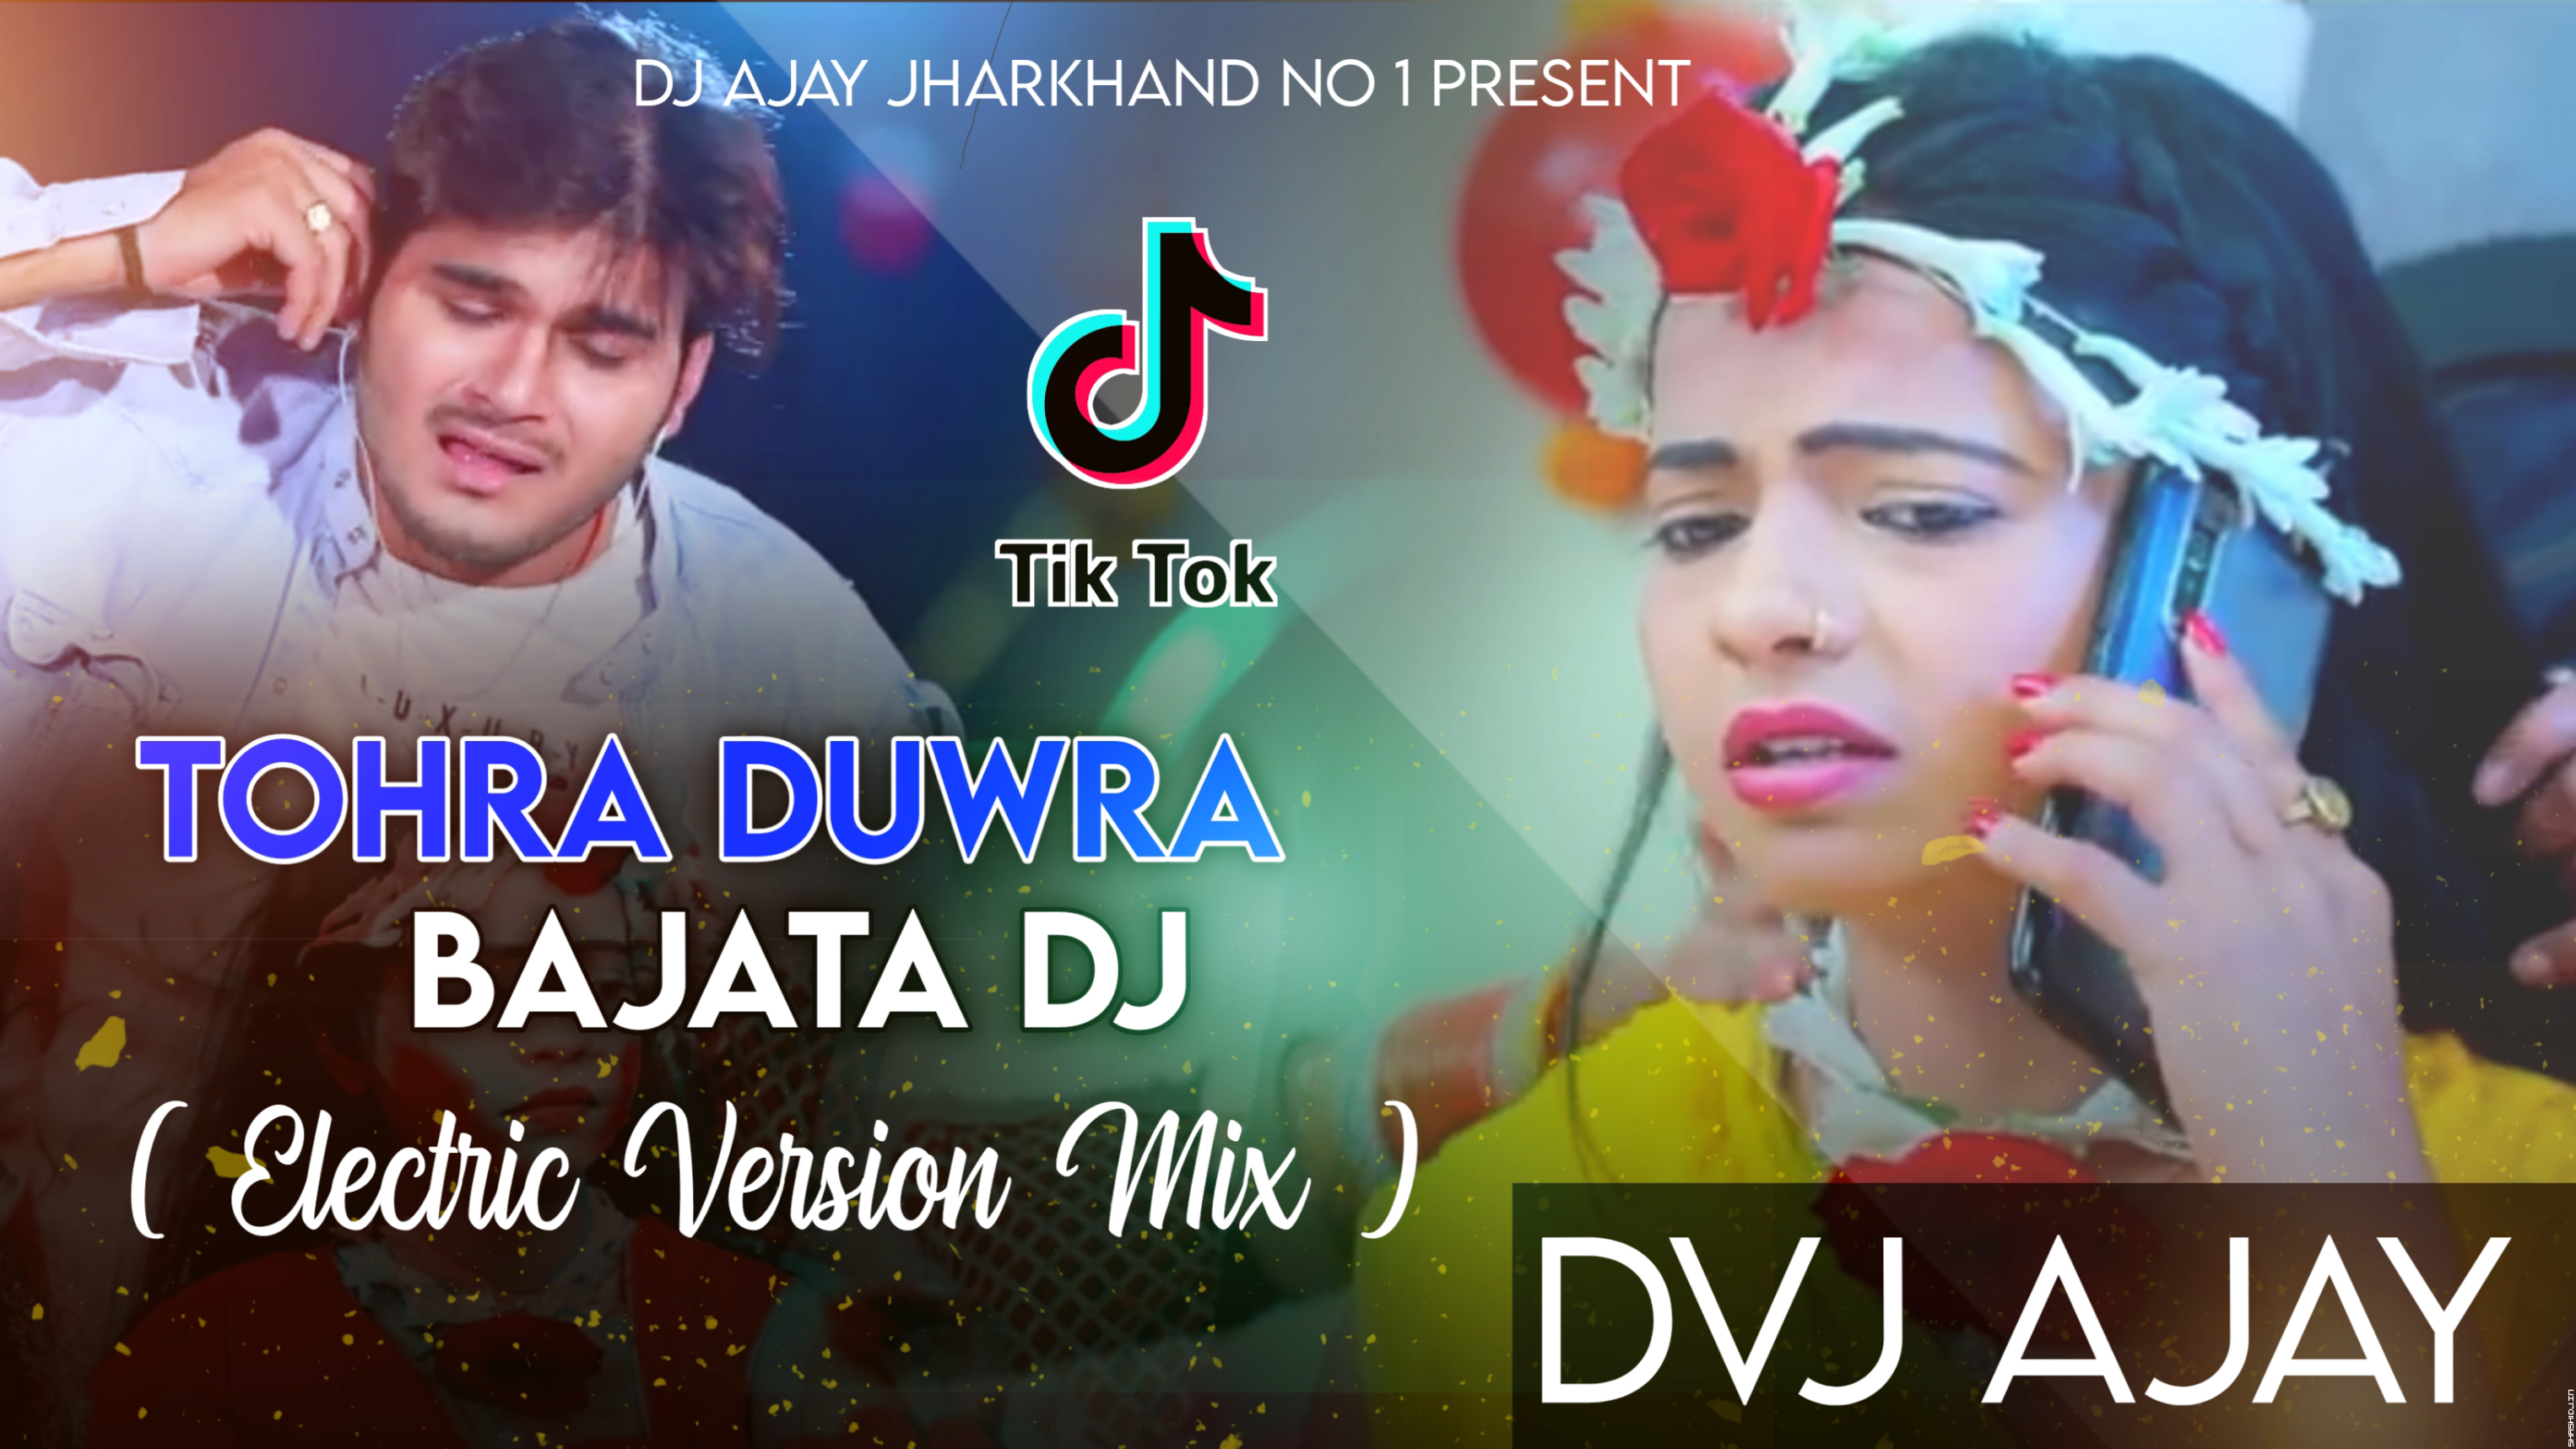 Tohra Duwra Pe Bajata DJ -- Electric Mix - Dvj Ajay .mp3